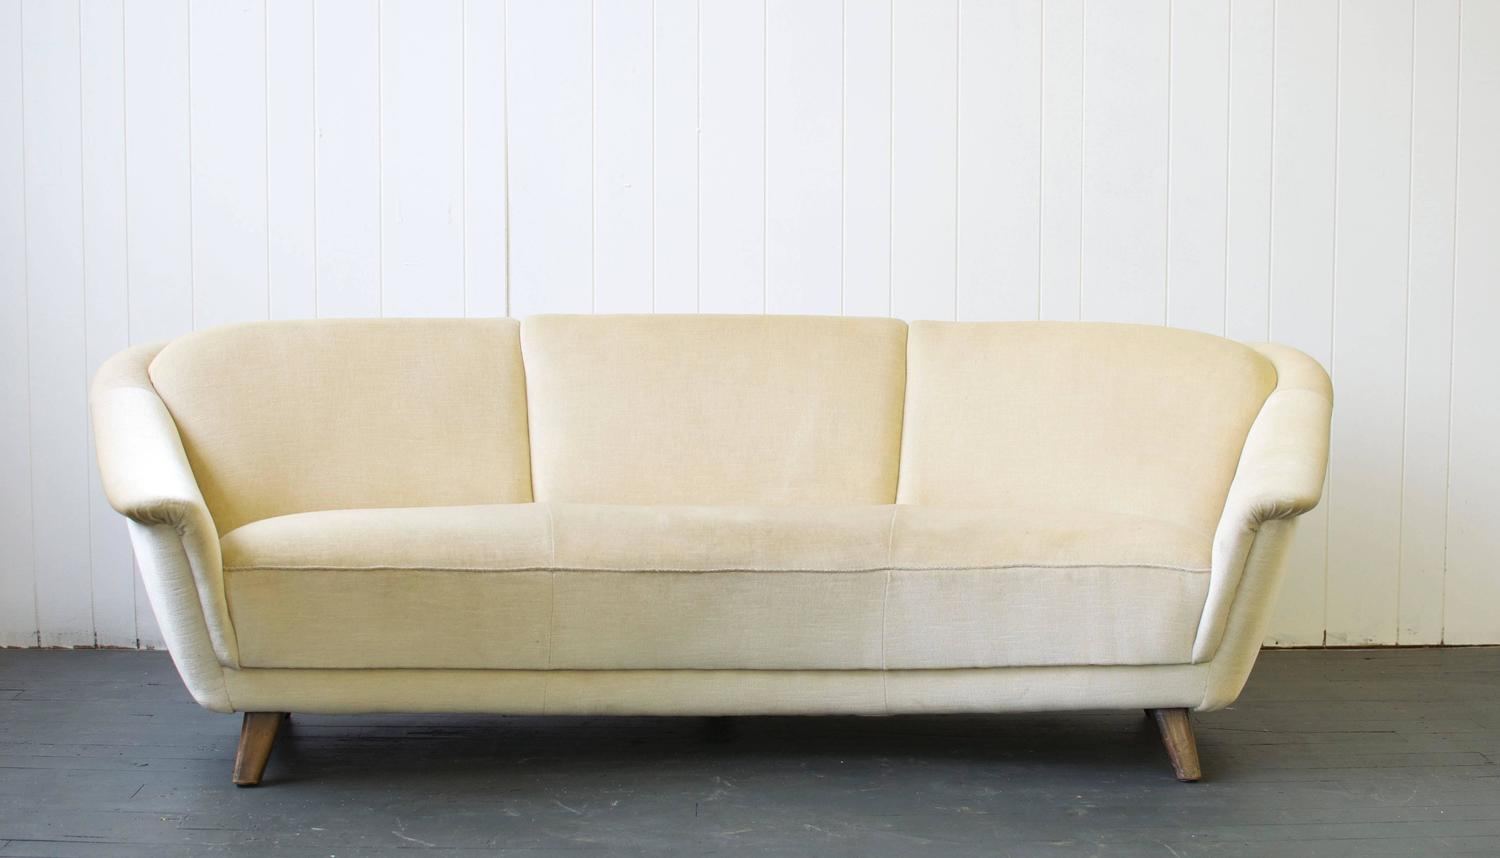 1950s curved german sofa for sale at 1stdibs for Urban sofa deutschland